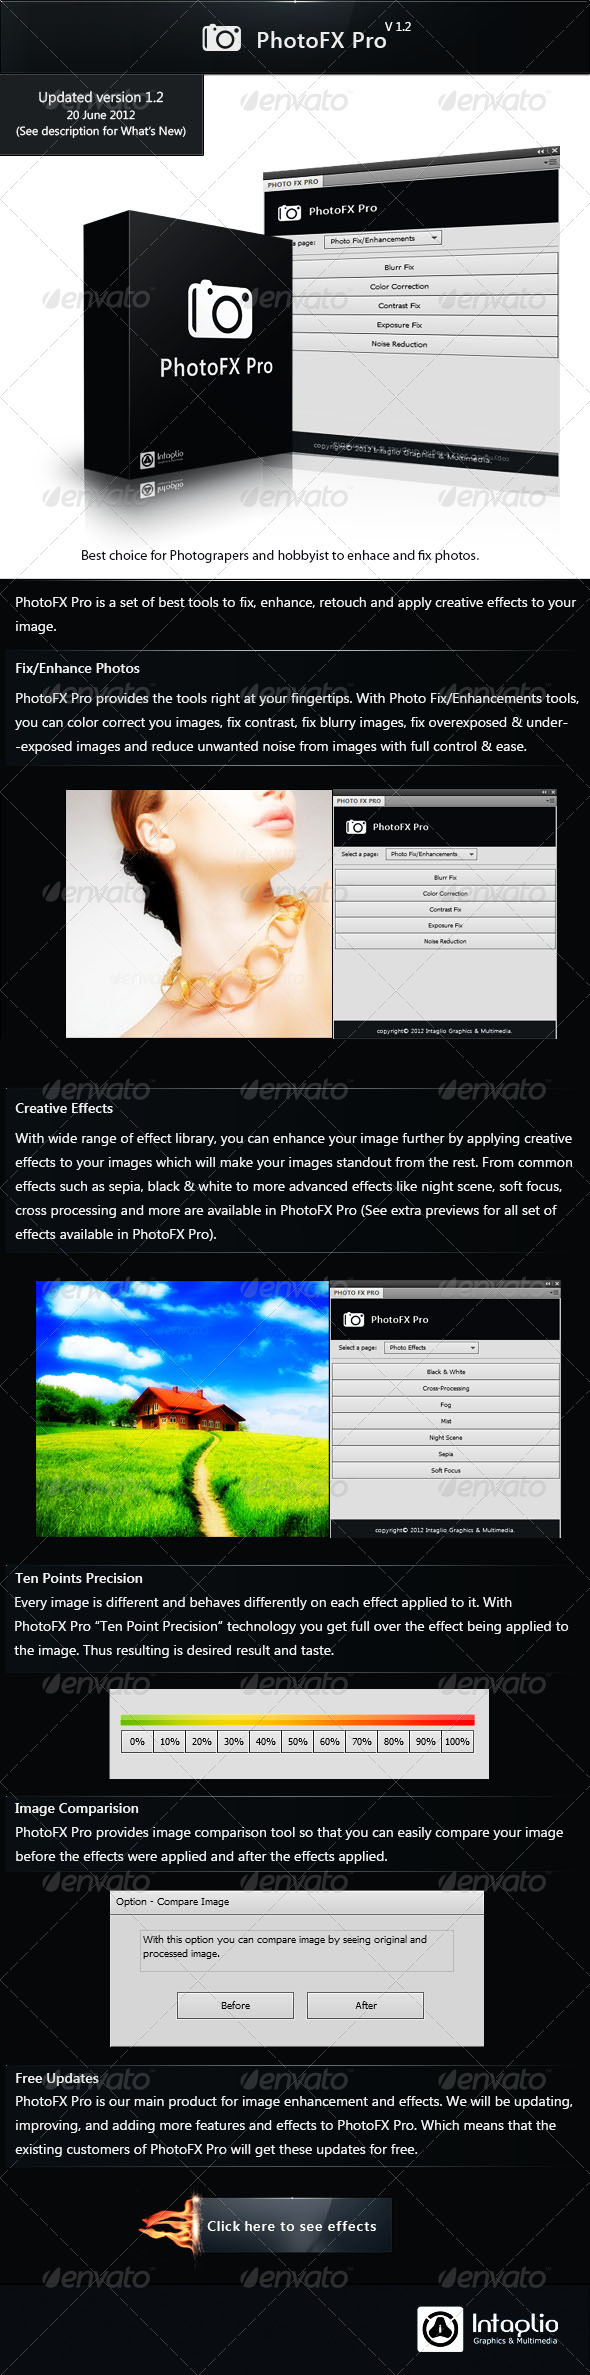 PhotoFX Pro - Photoshop Add-ons